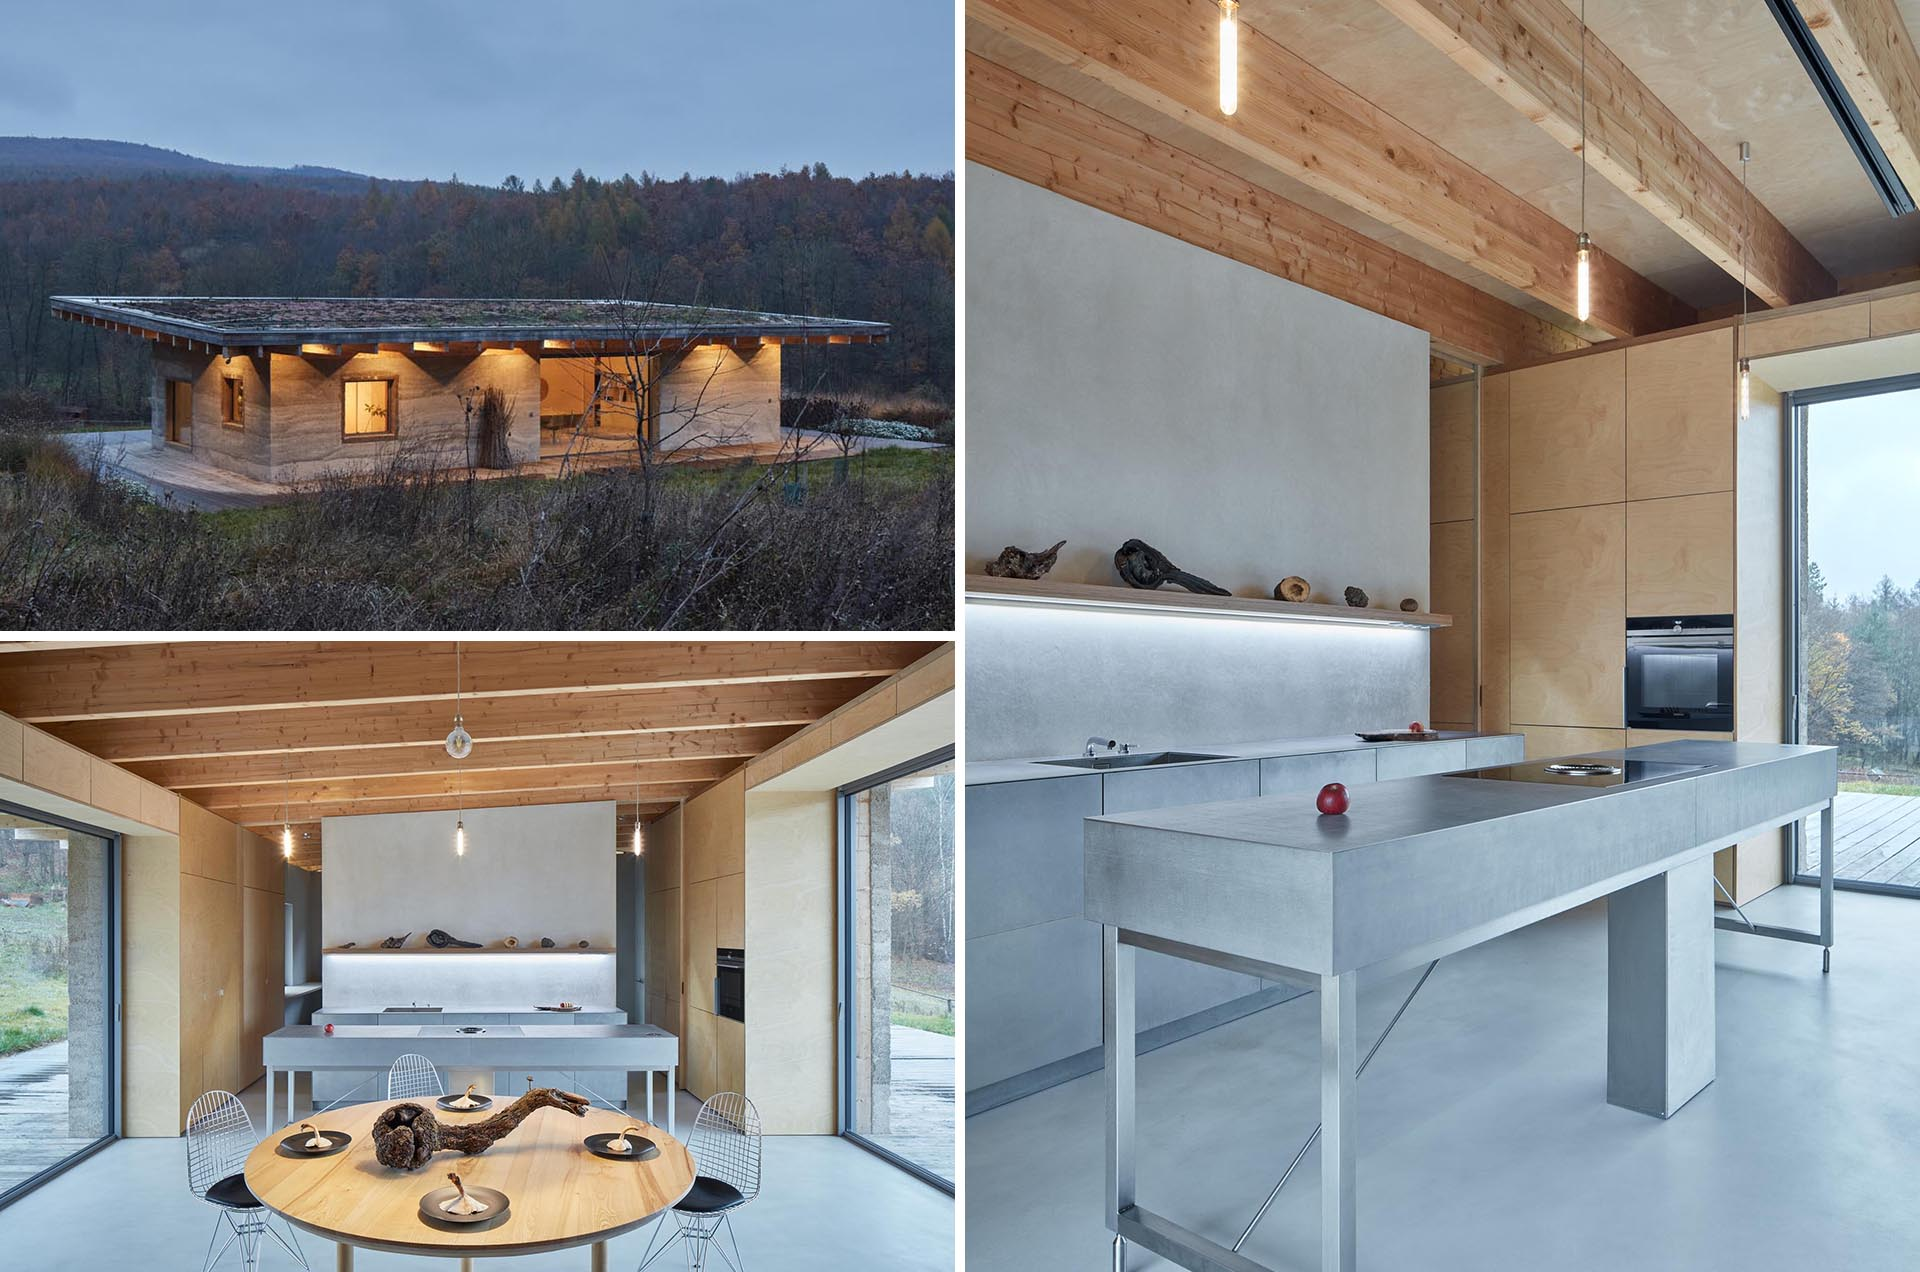 A modern cabin has been designed with hempcrete walls and a green roof.